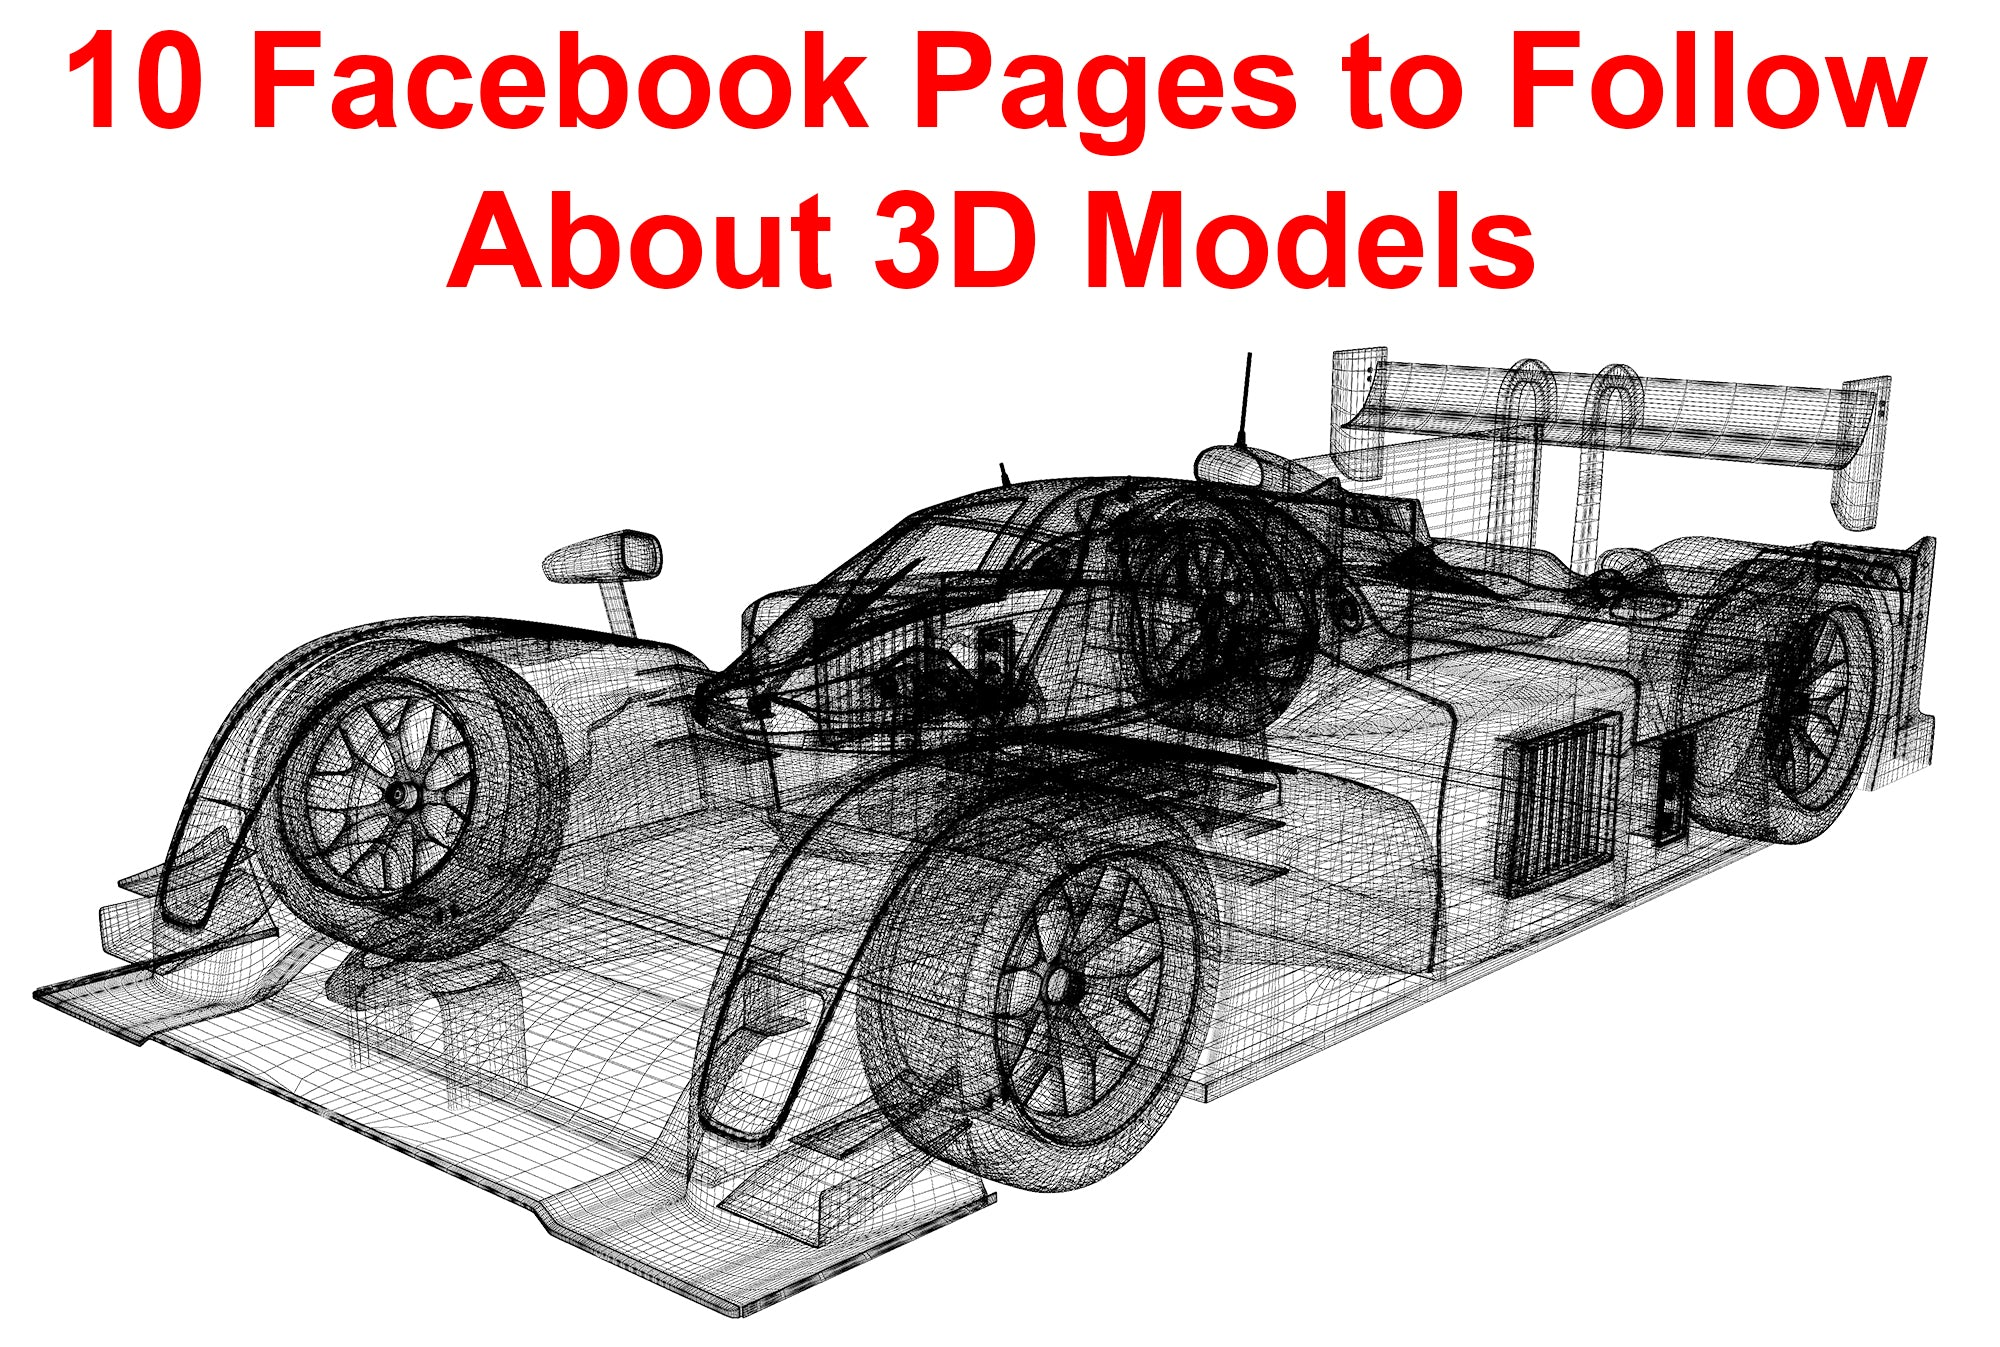 10 Facebook Pages to Follow About 3D Models